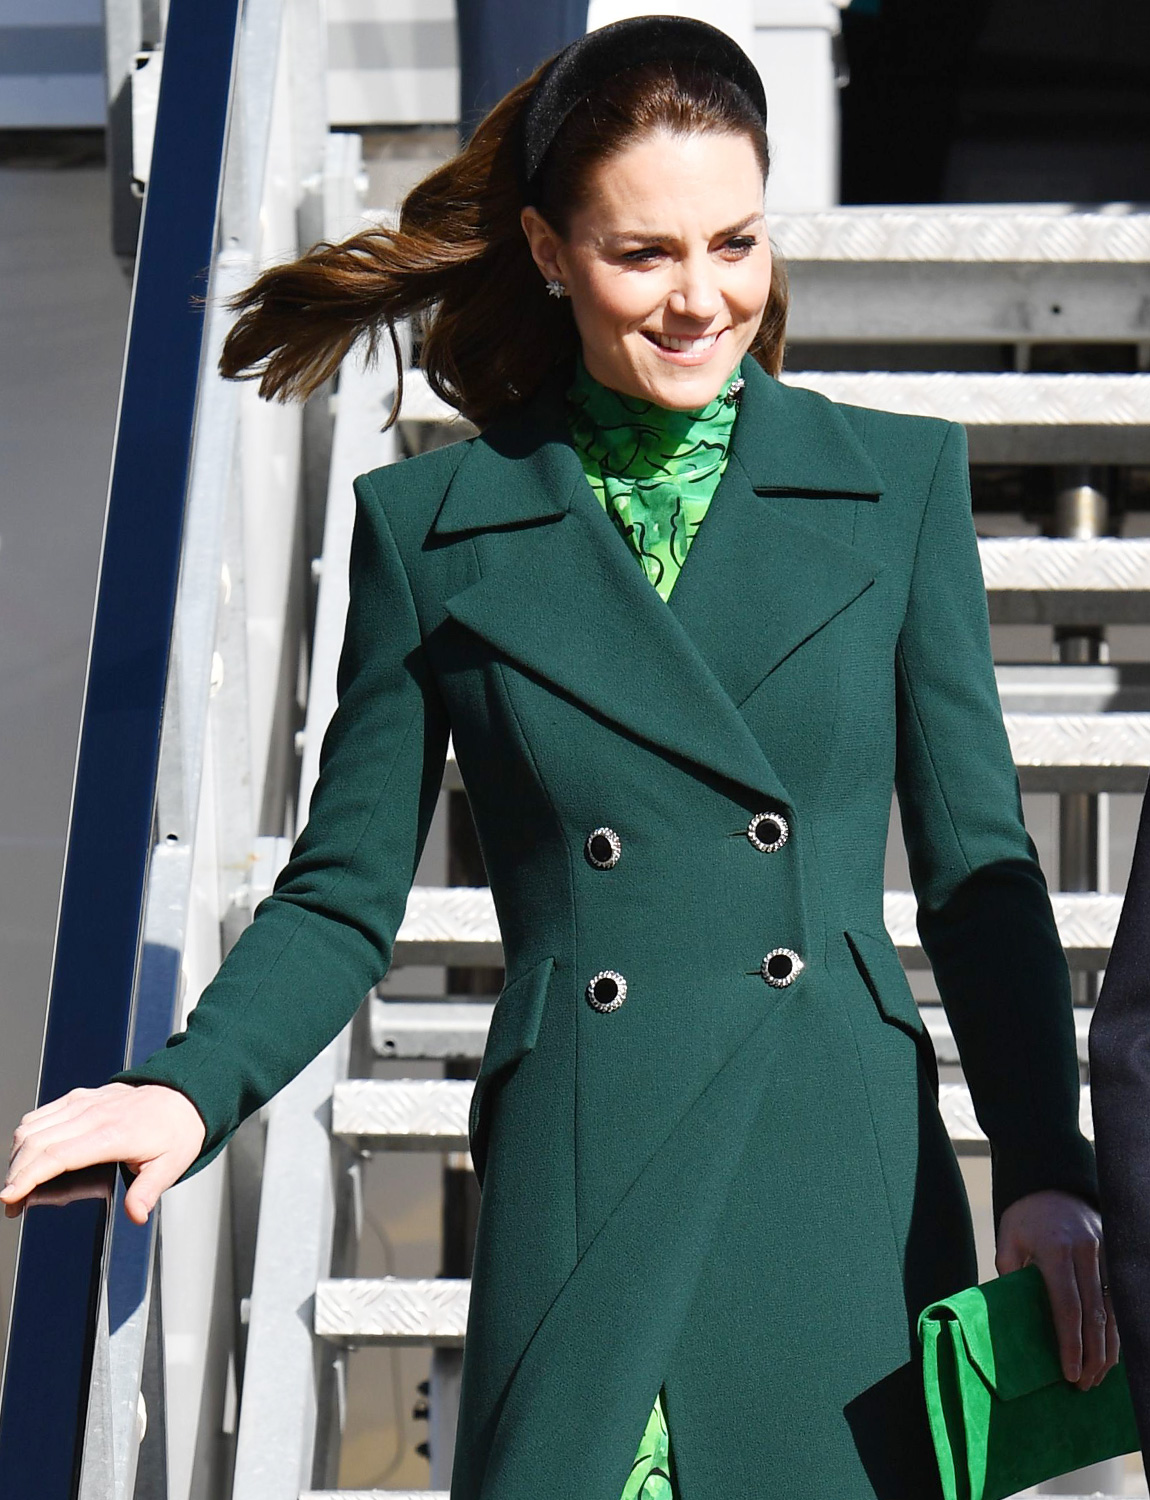 Catherine Duchess of Cambridge and Prince William arrive at Dublin International Airport Prince William and Catherine Duchess of Cambridge visit to Ireland - 03 Mar 2020